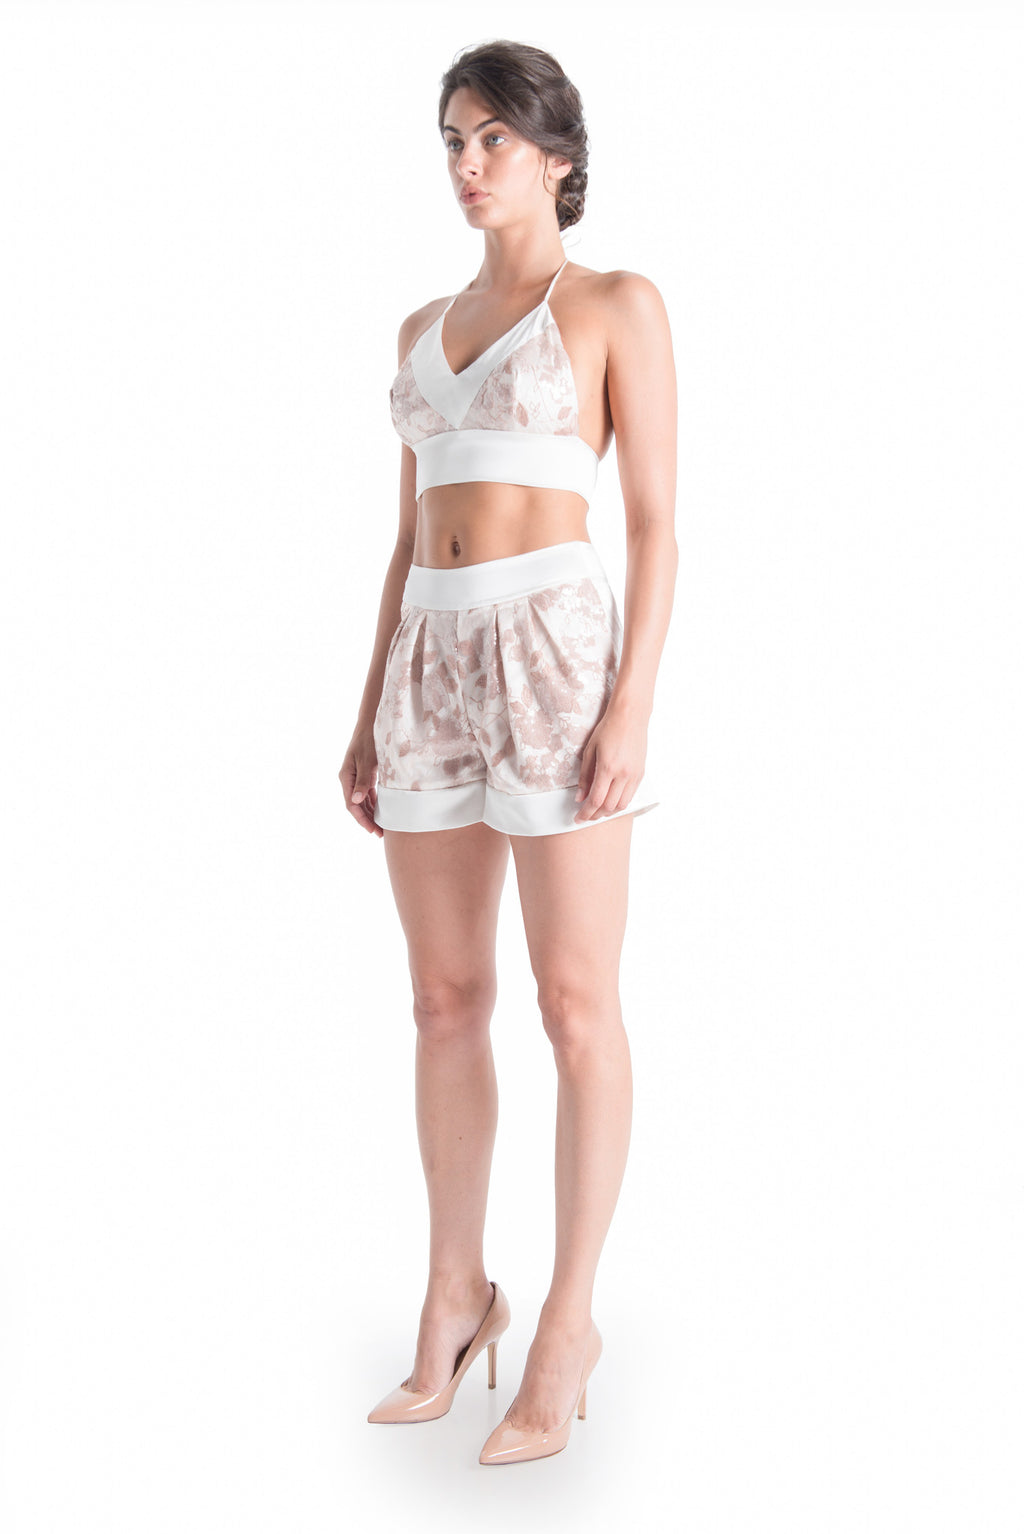 OLIVIA Lace Satin Shorts - ROMANTIC DUSTY | SAMPLE - HAUS OF SONG